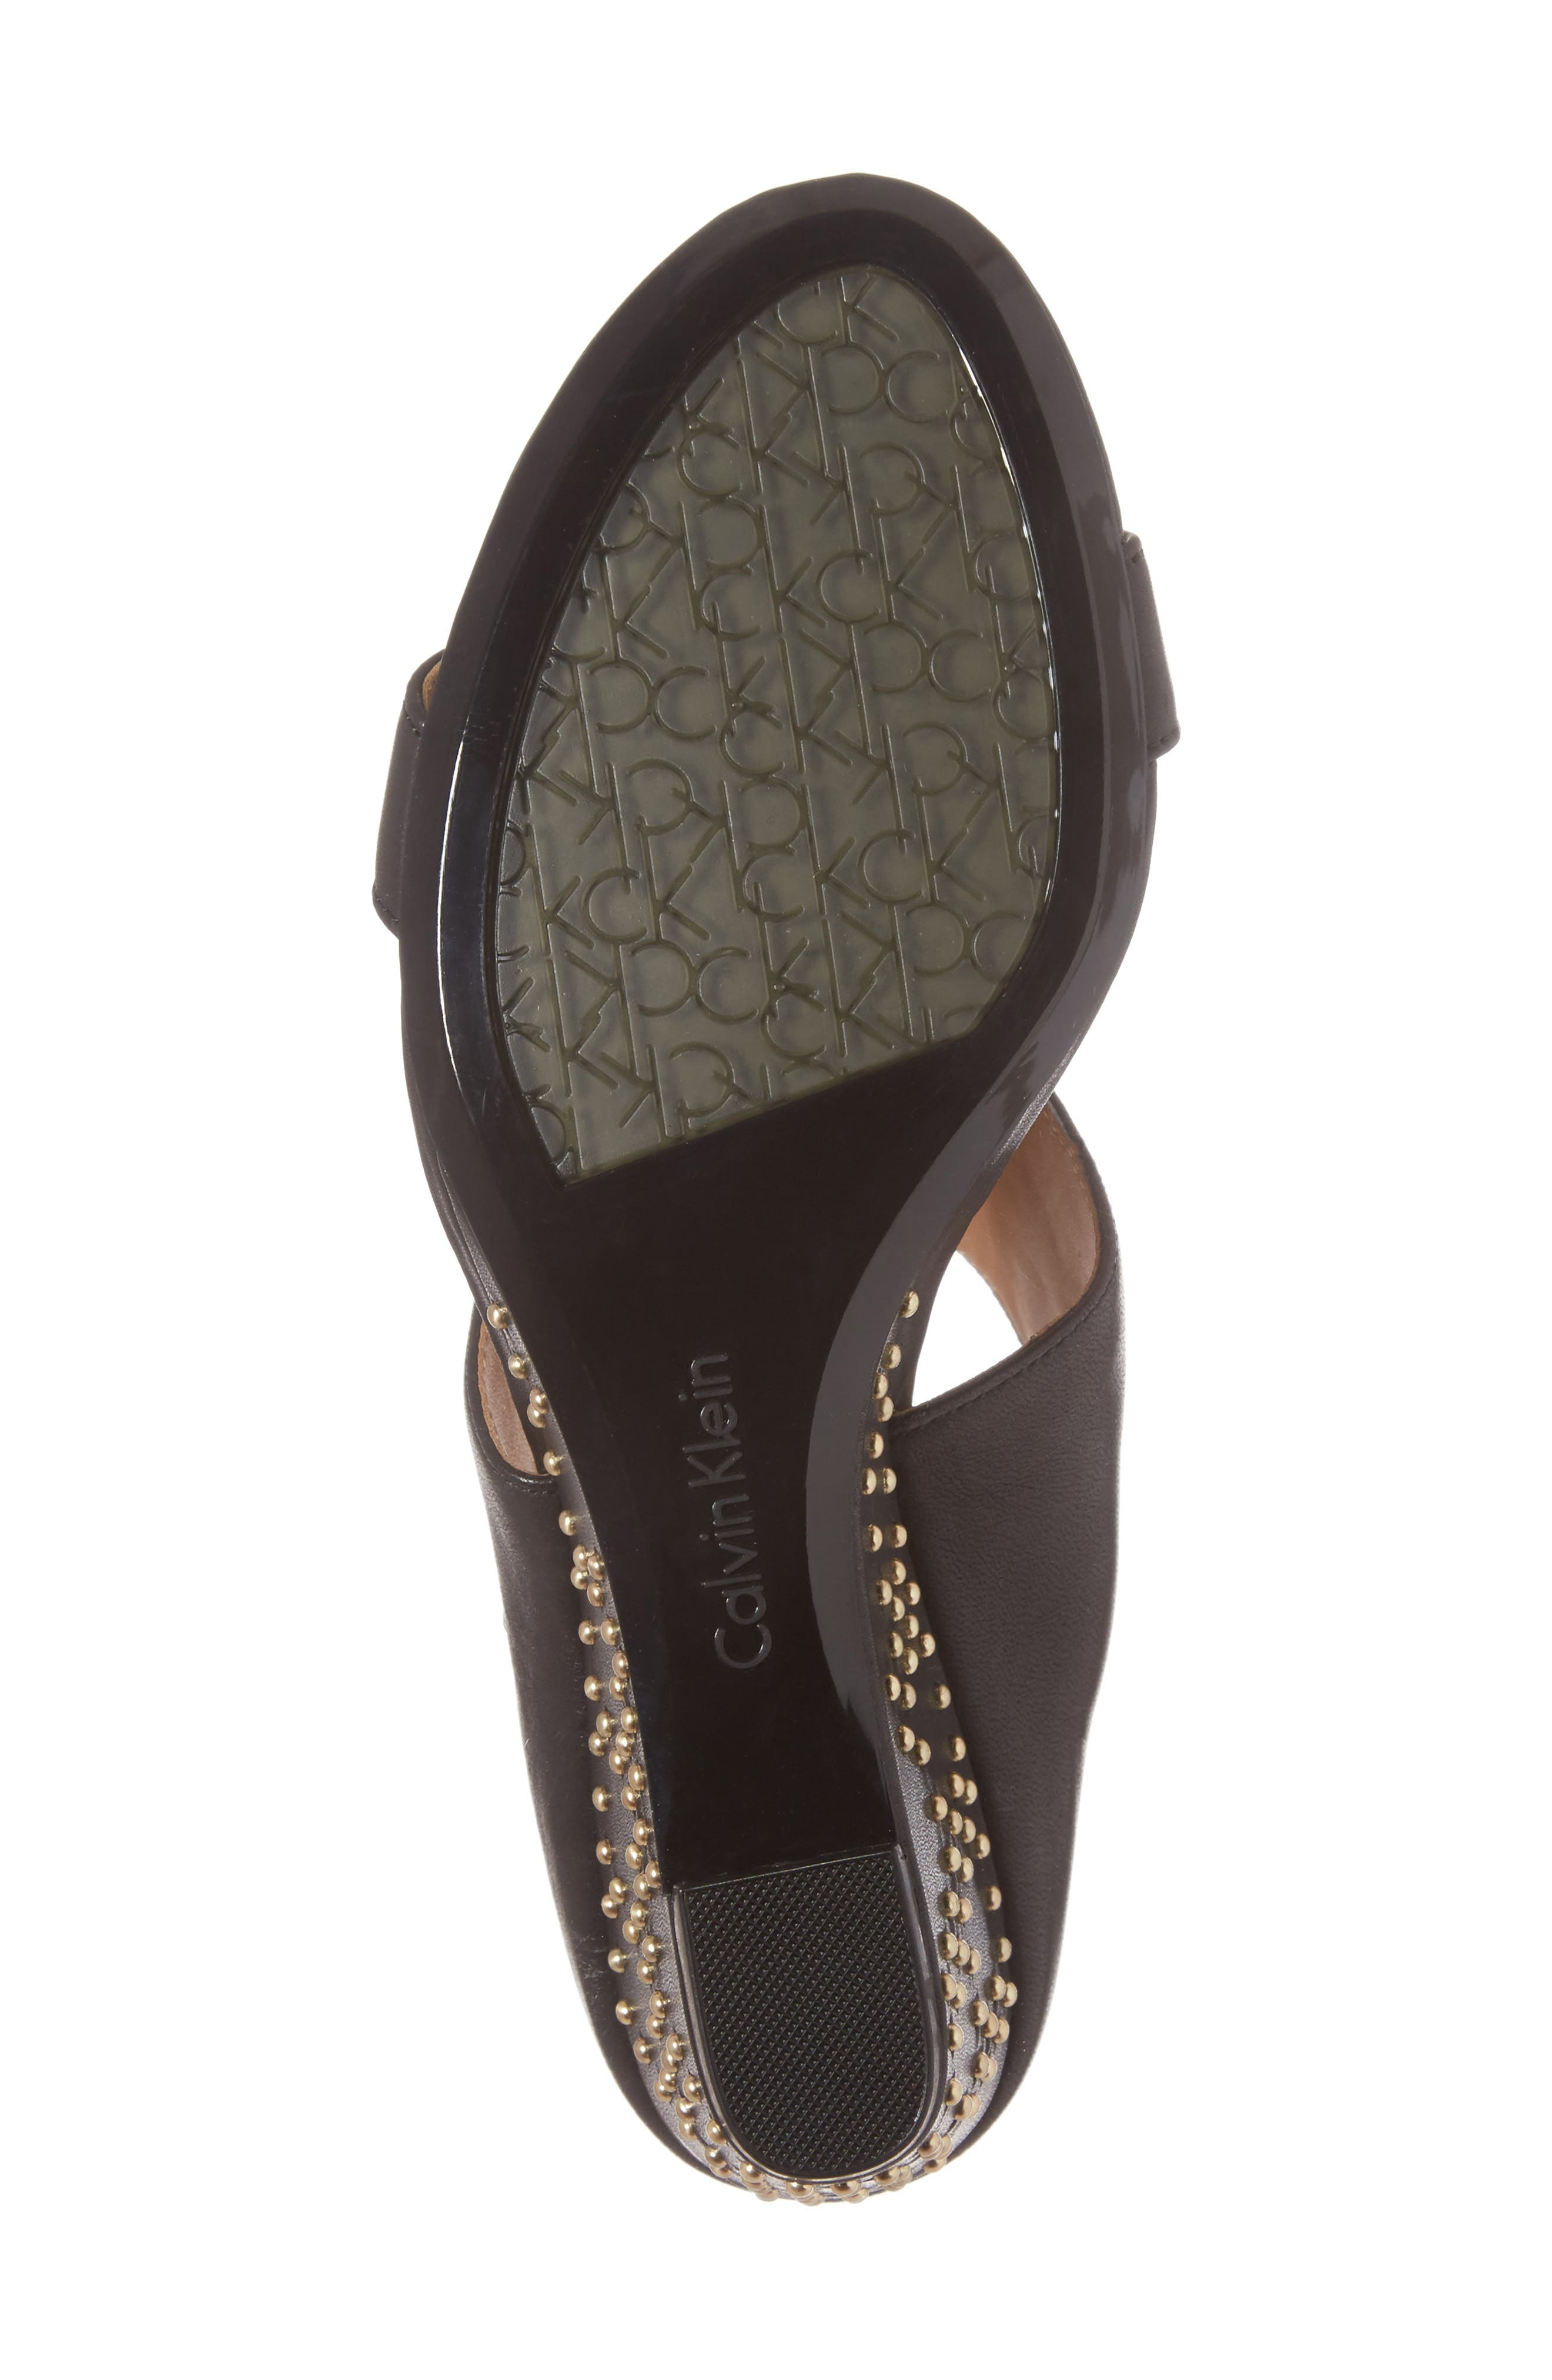 Phyllis Studded Wedge Sandal,                             Alternate thumbnail 6, color,                             Black Leather